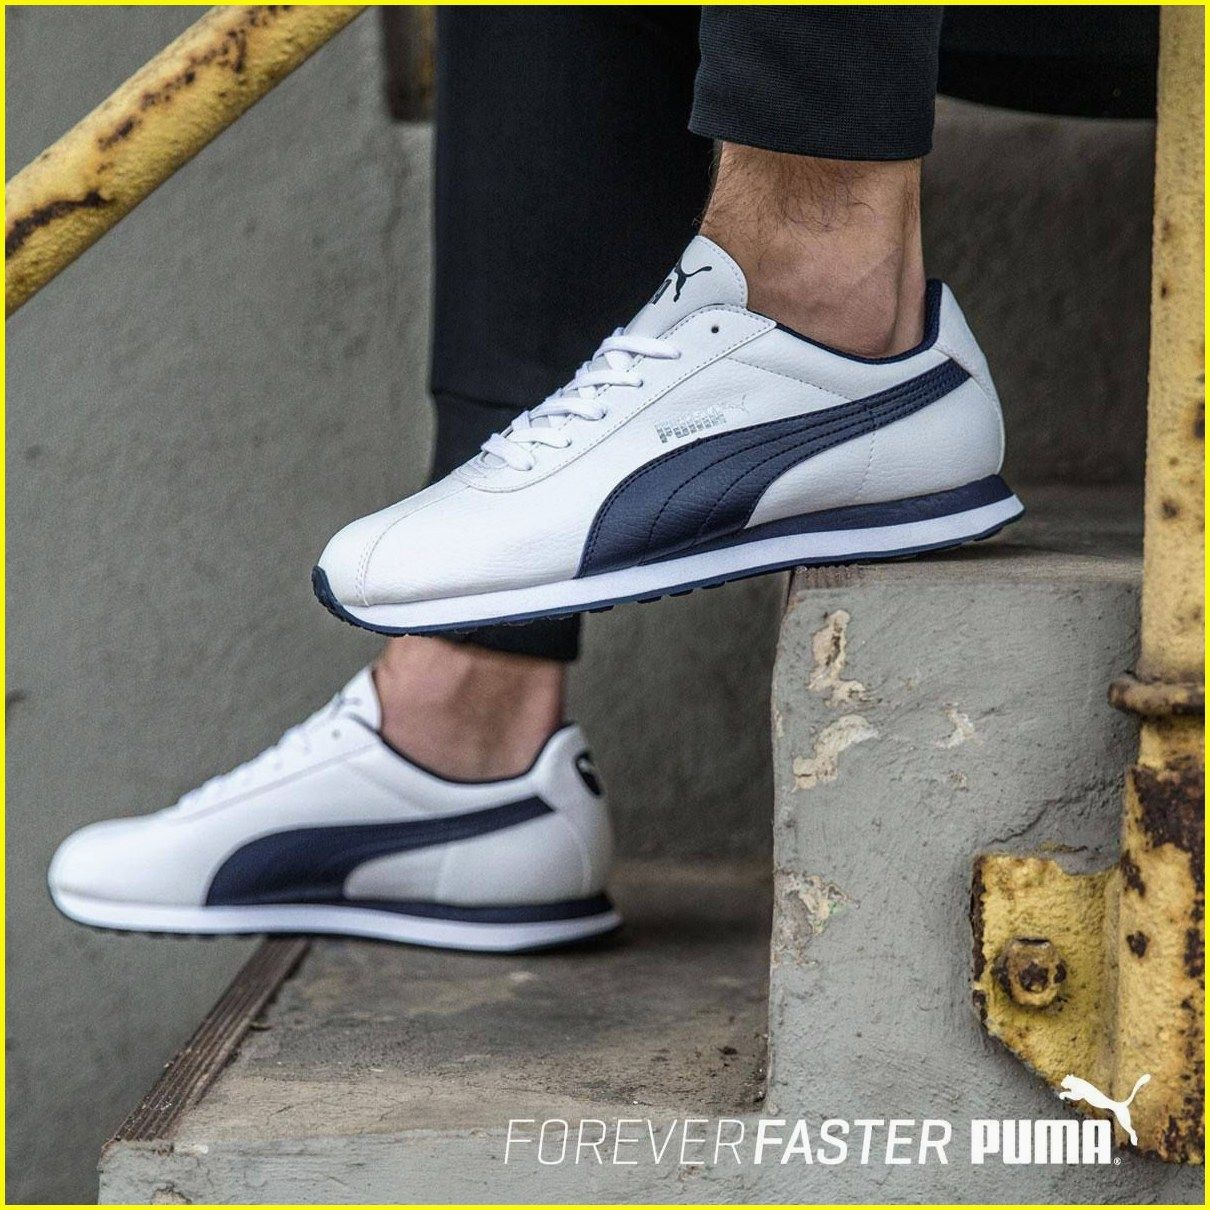 afec75770f3 Striped Men's Leather Sneakers. Trying to find more info on sneakers? Then  click here to get further information. Relevant details.